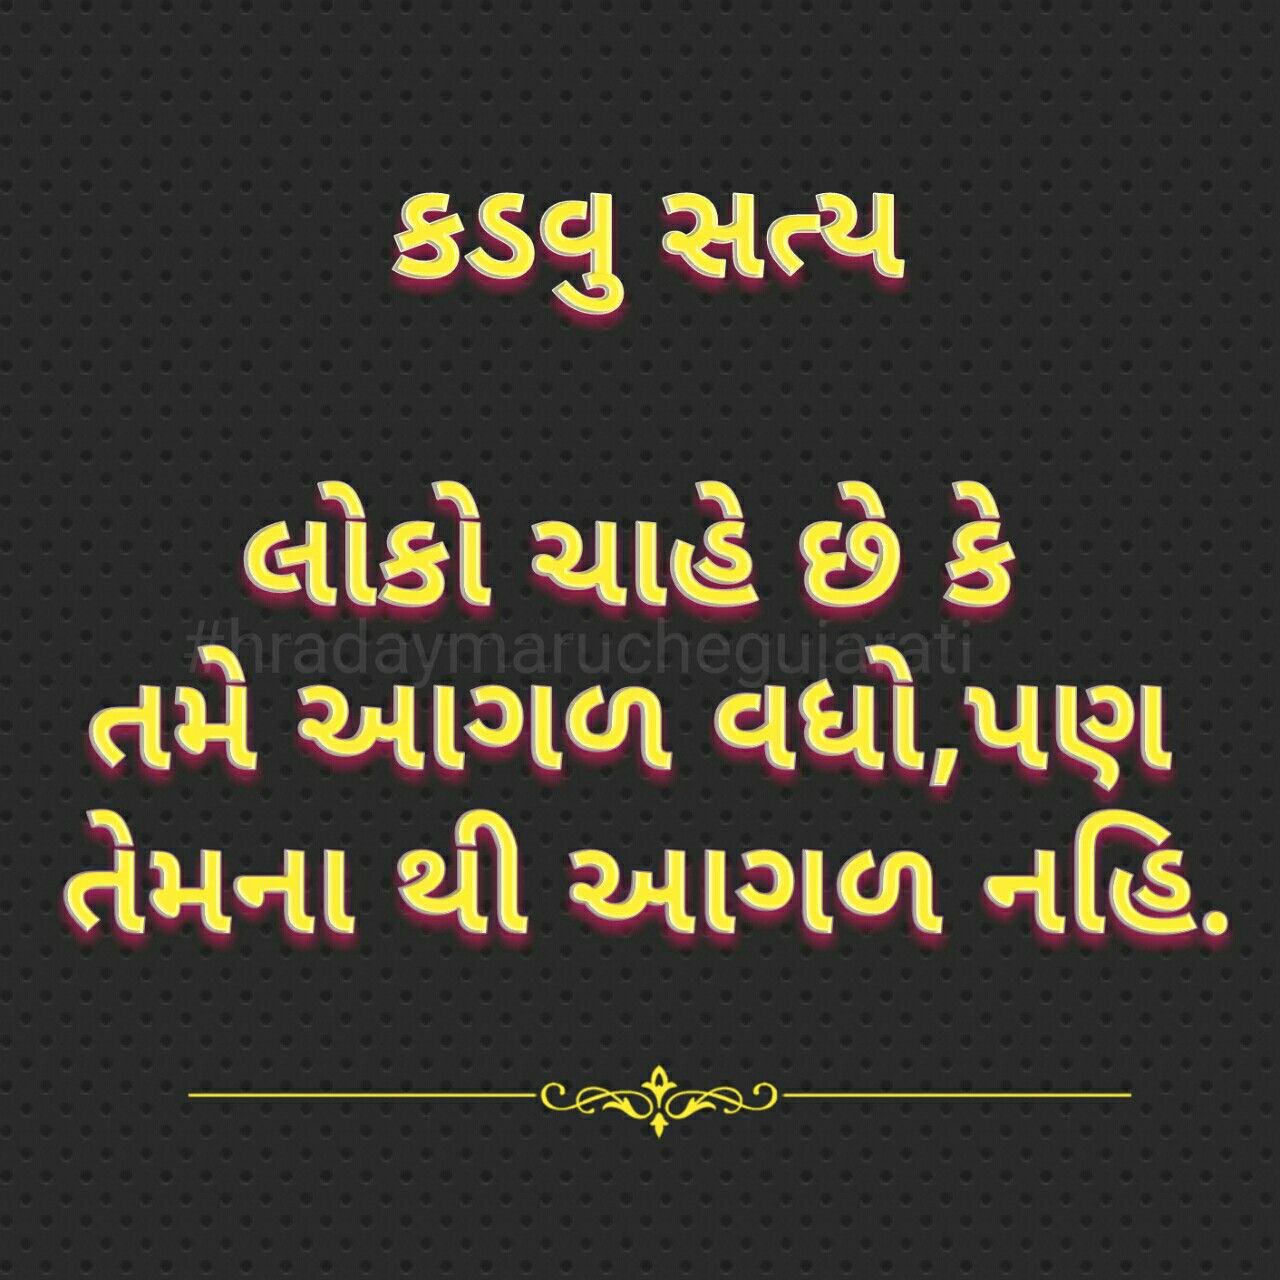 Gujarati Quote Gujrati Quote Quotes Gujarati Quotes Hindi Quotes